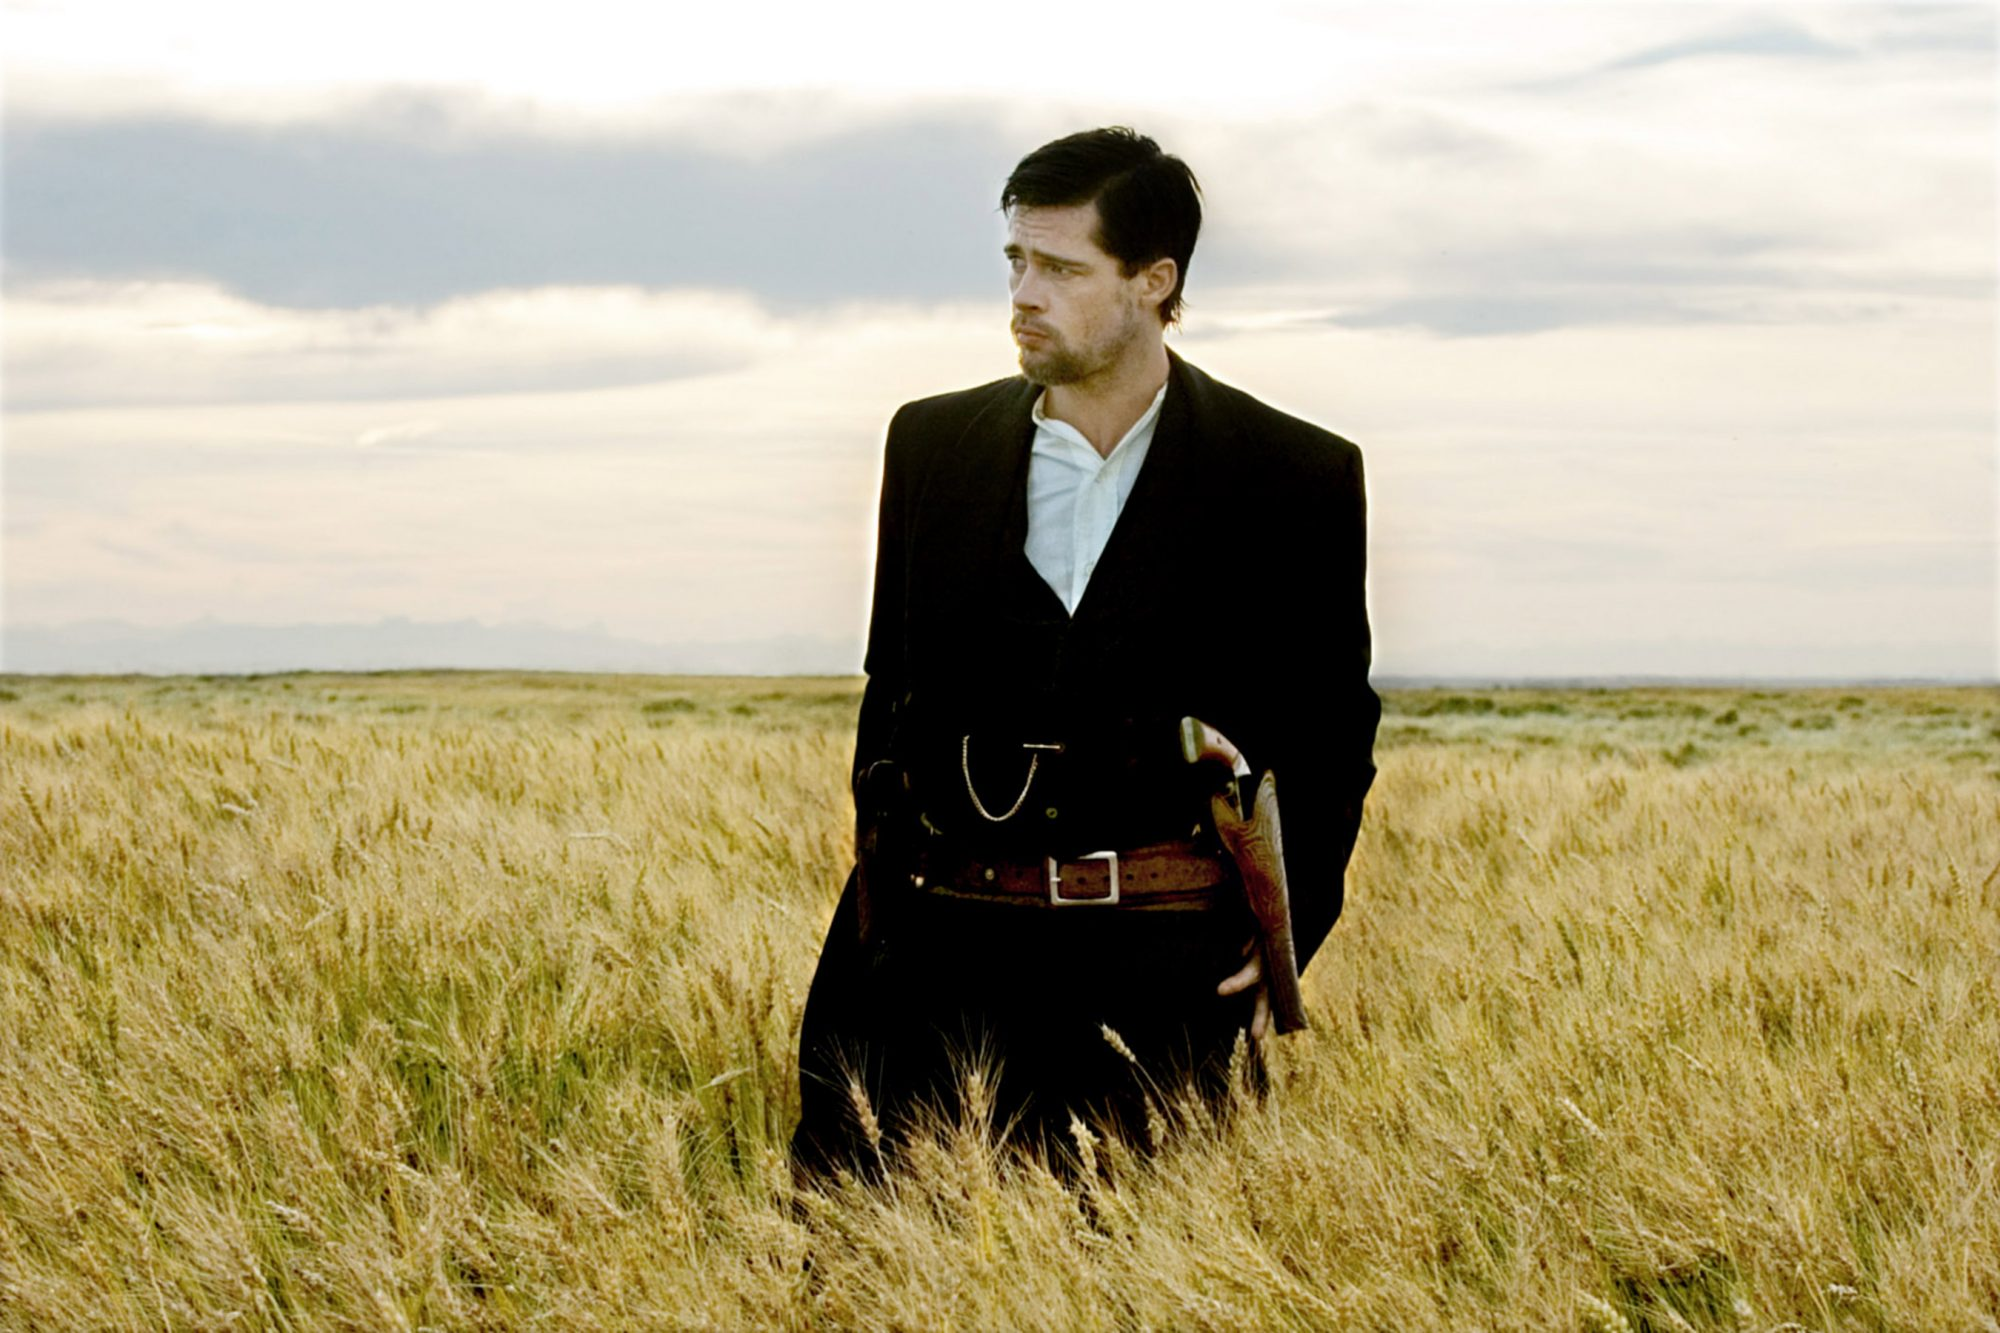 THE ASSASSINATION OF JESSE JAMES BY THE COWARD BOB FORD, Brad Pitt as Jesse James, 2007. (c) Warner